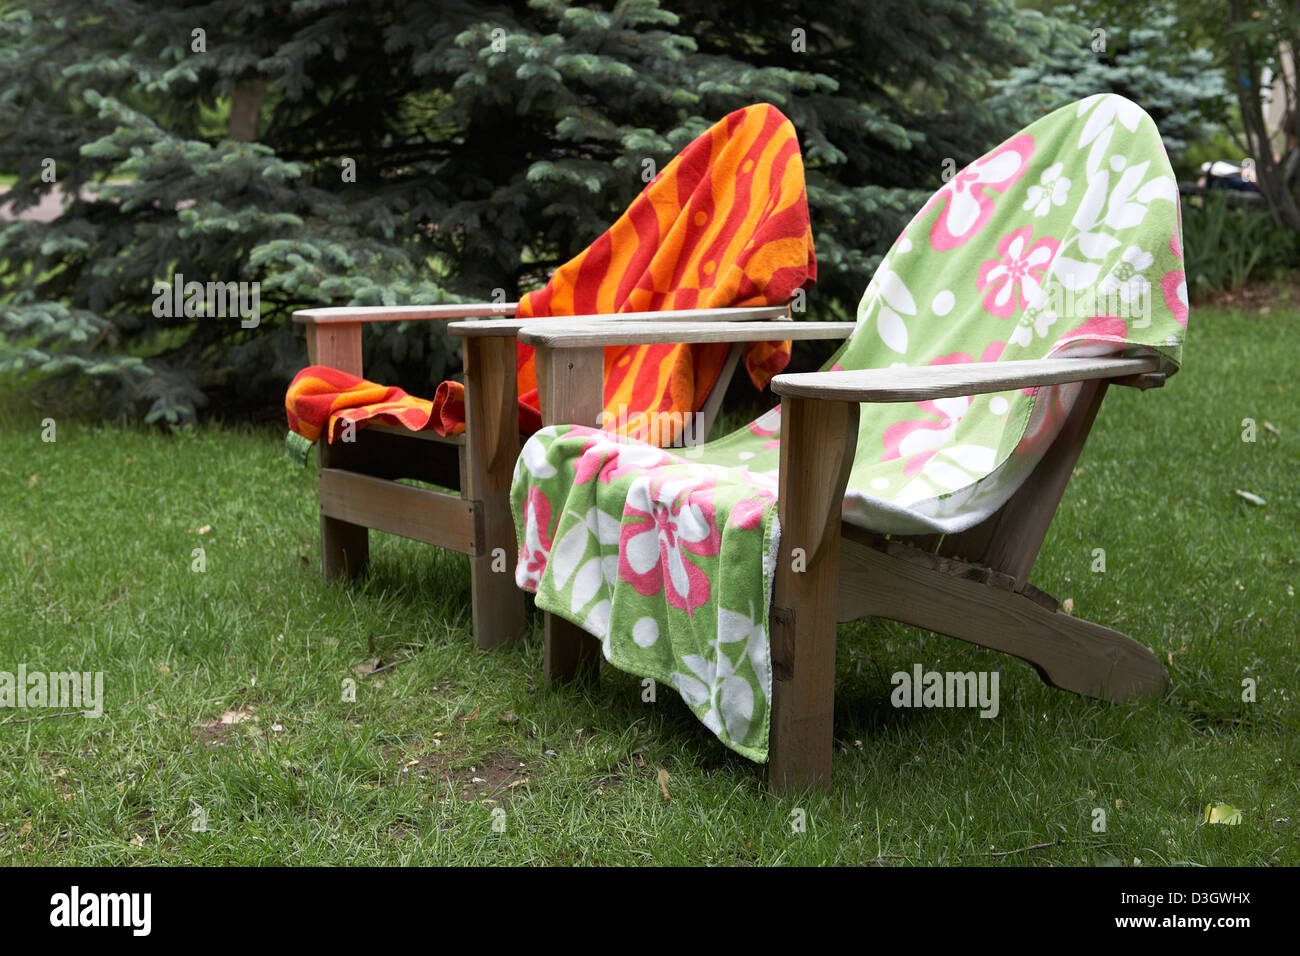 Colorful towels drying on Adirondack Chairs - Stock Image